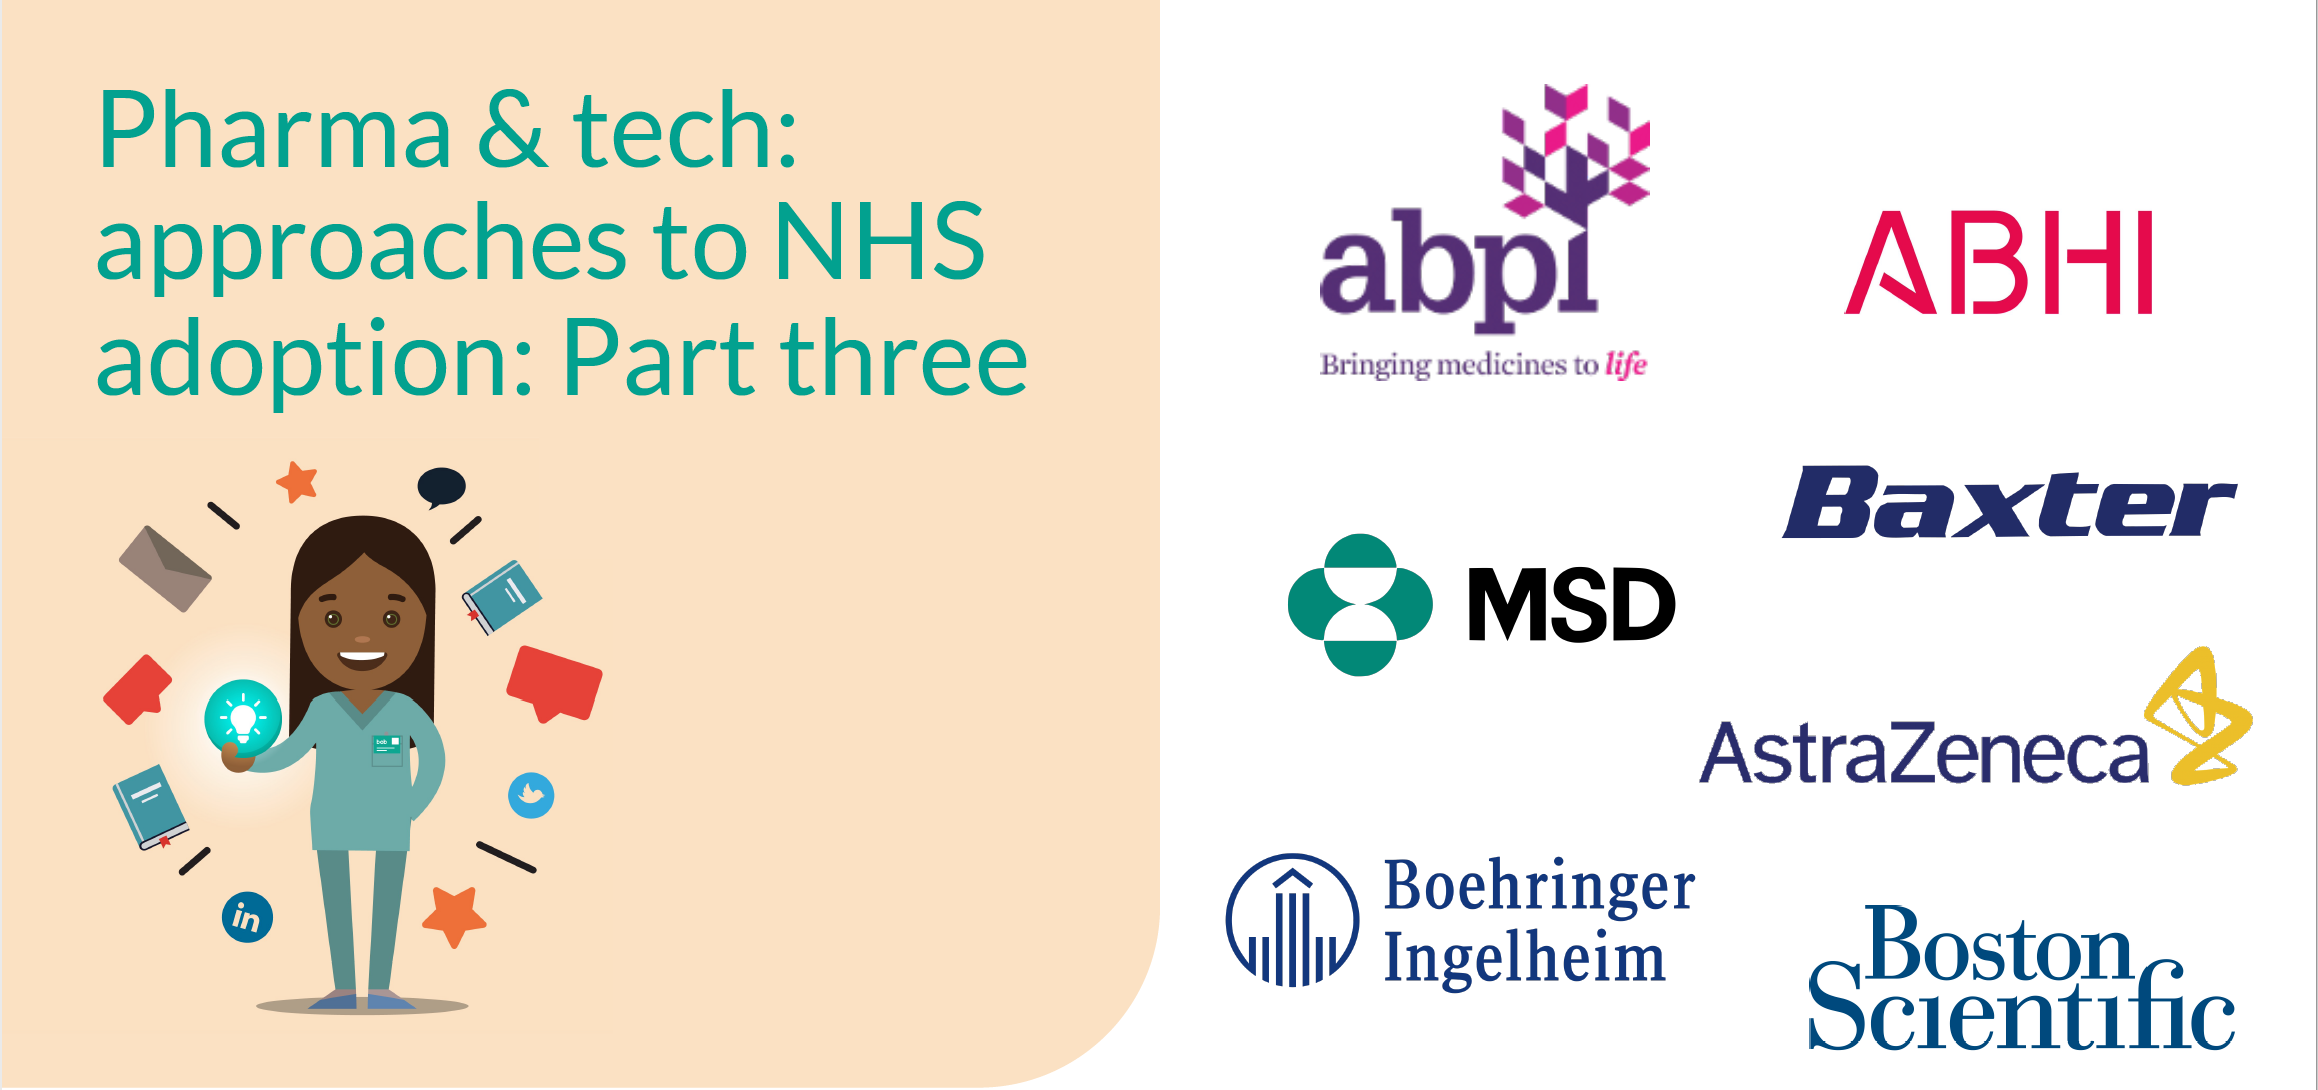 Pharma and Tech: Approaches to NHS adoption - Part three